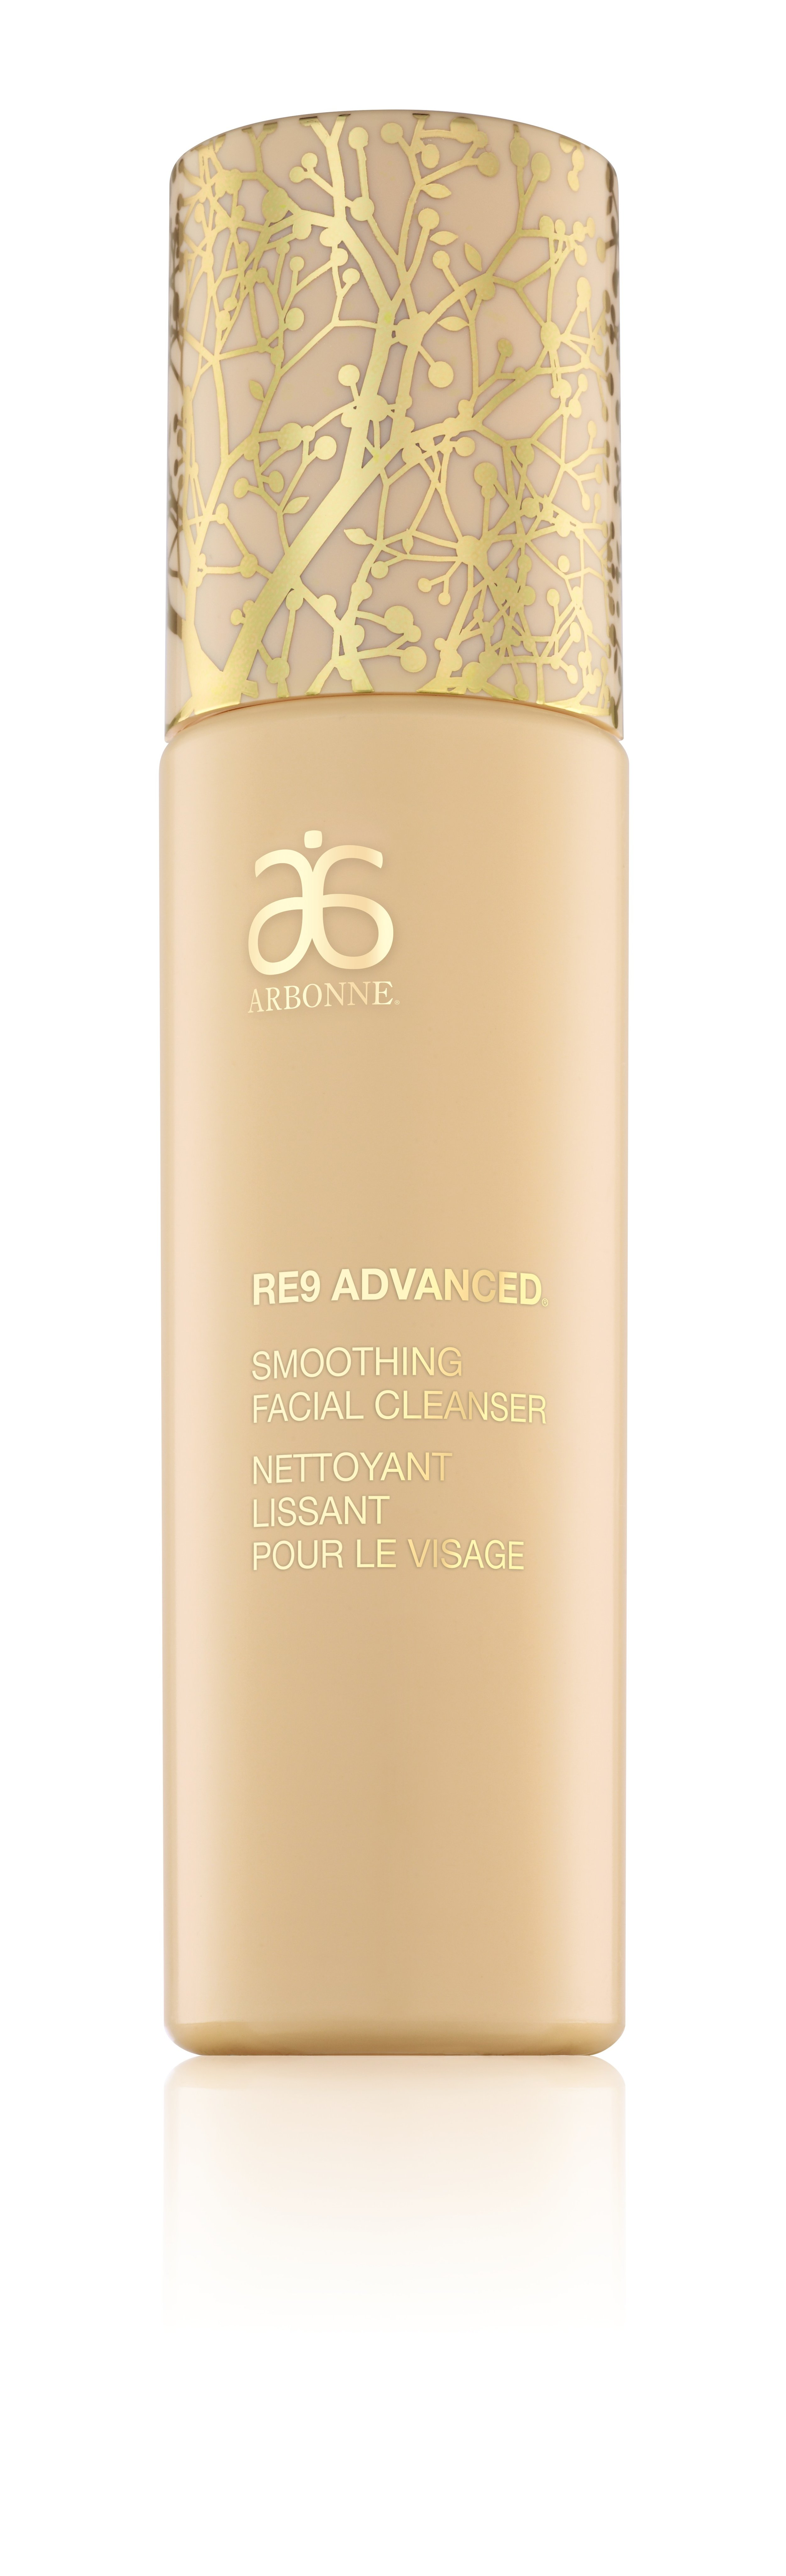 RE9 Smoothing Facial Cleanser.jpg